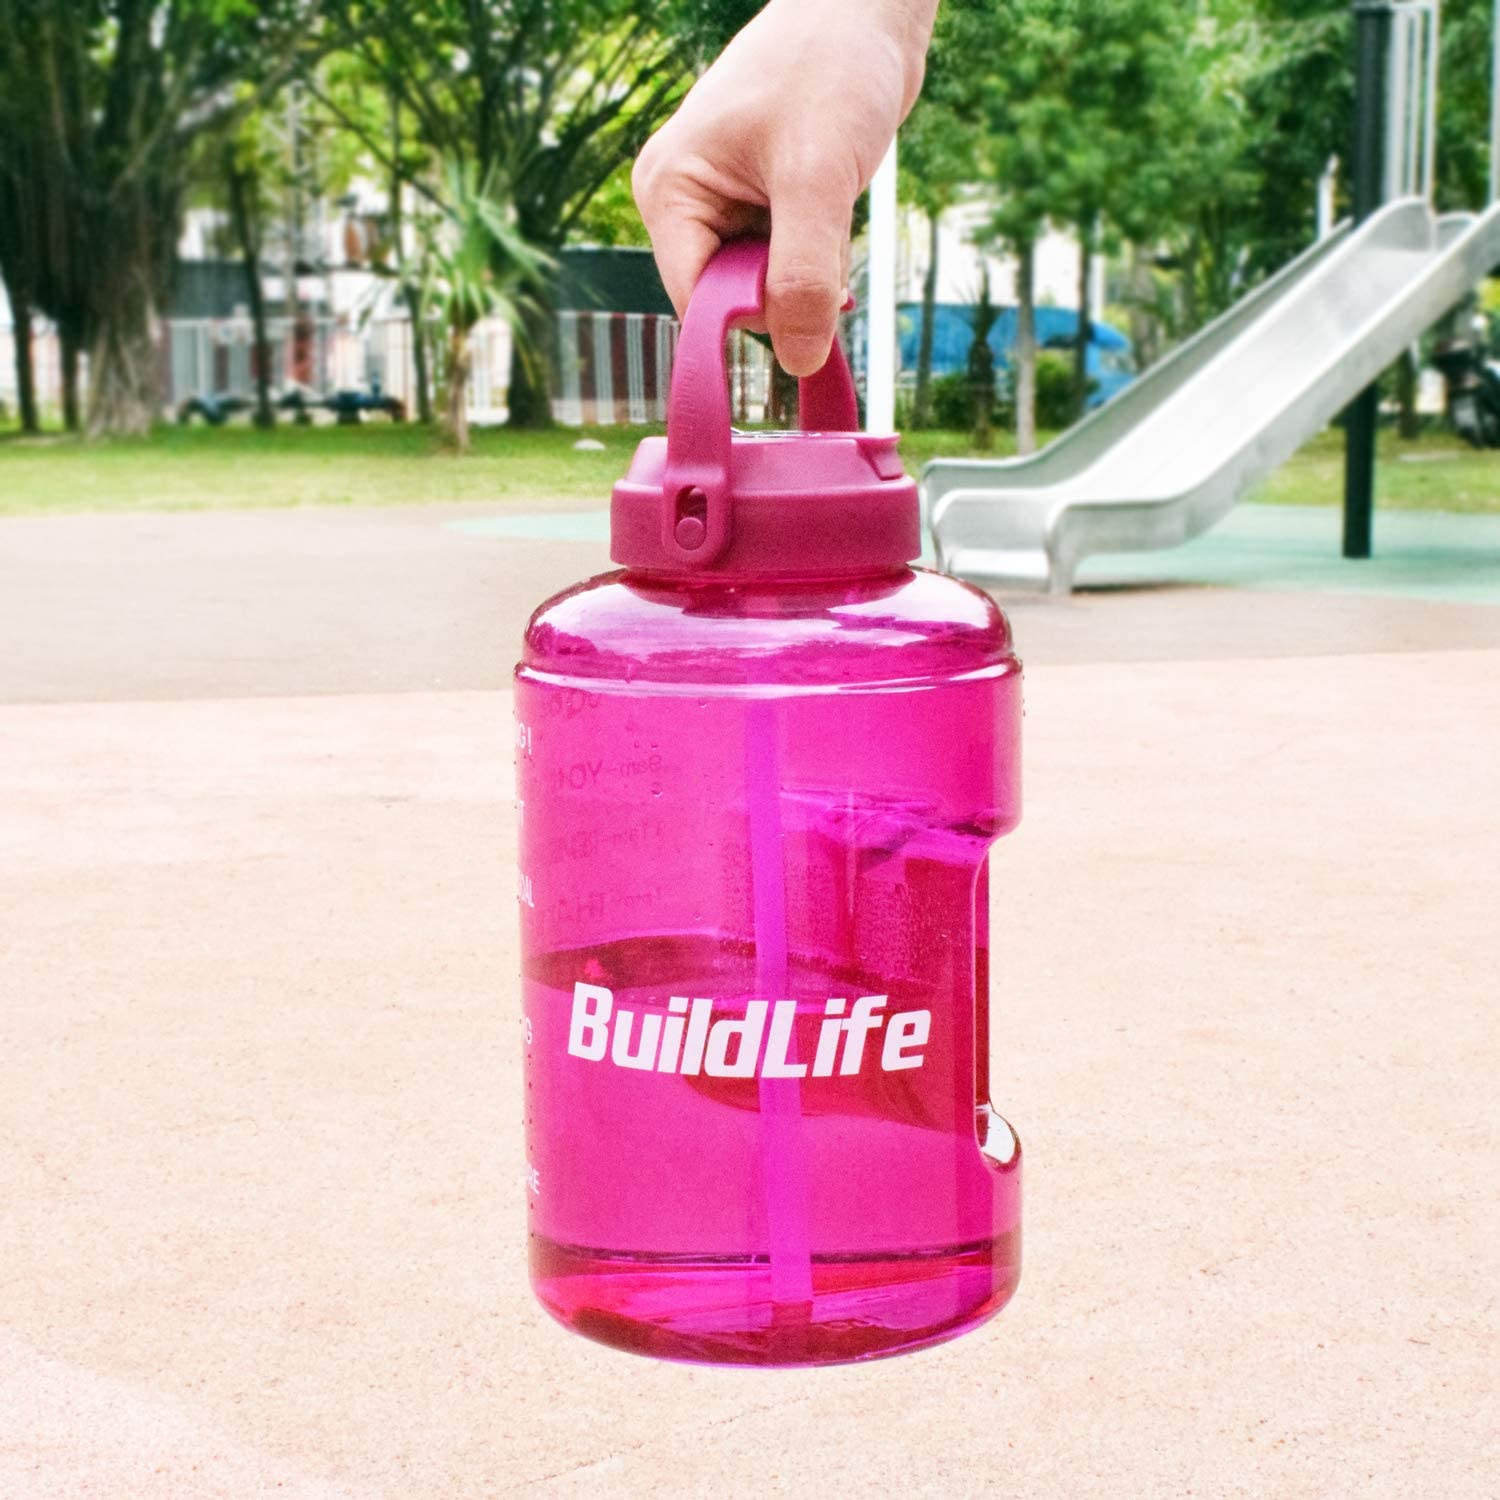 BuildLife 3.78L//2.5L Water Bottle with Starw /& Motivational Time Marker Large BPA Free Wide Mouth with Handle Reusable Leakproof to Drink More Water Daily